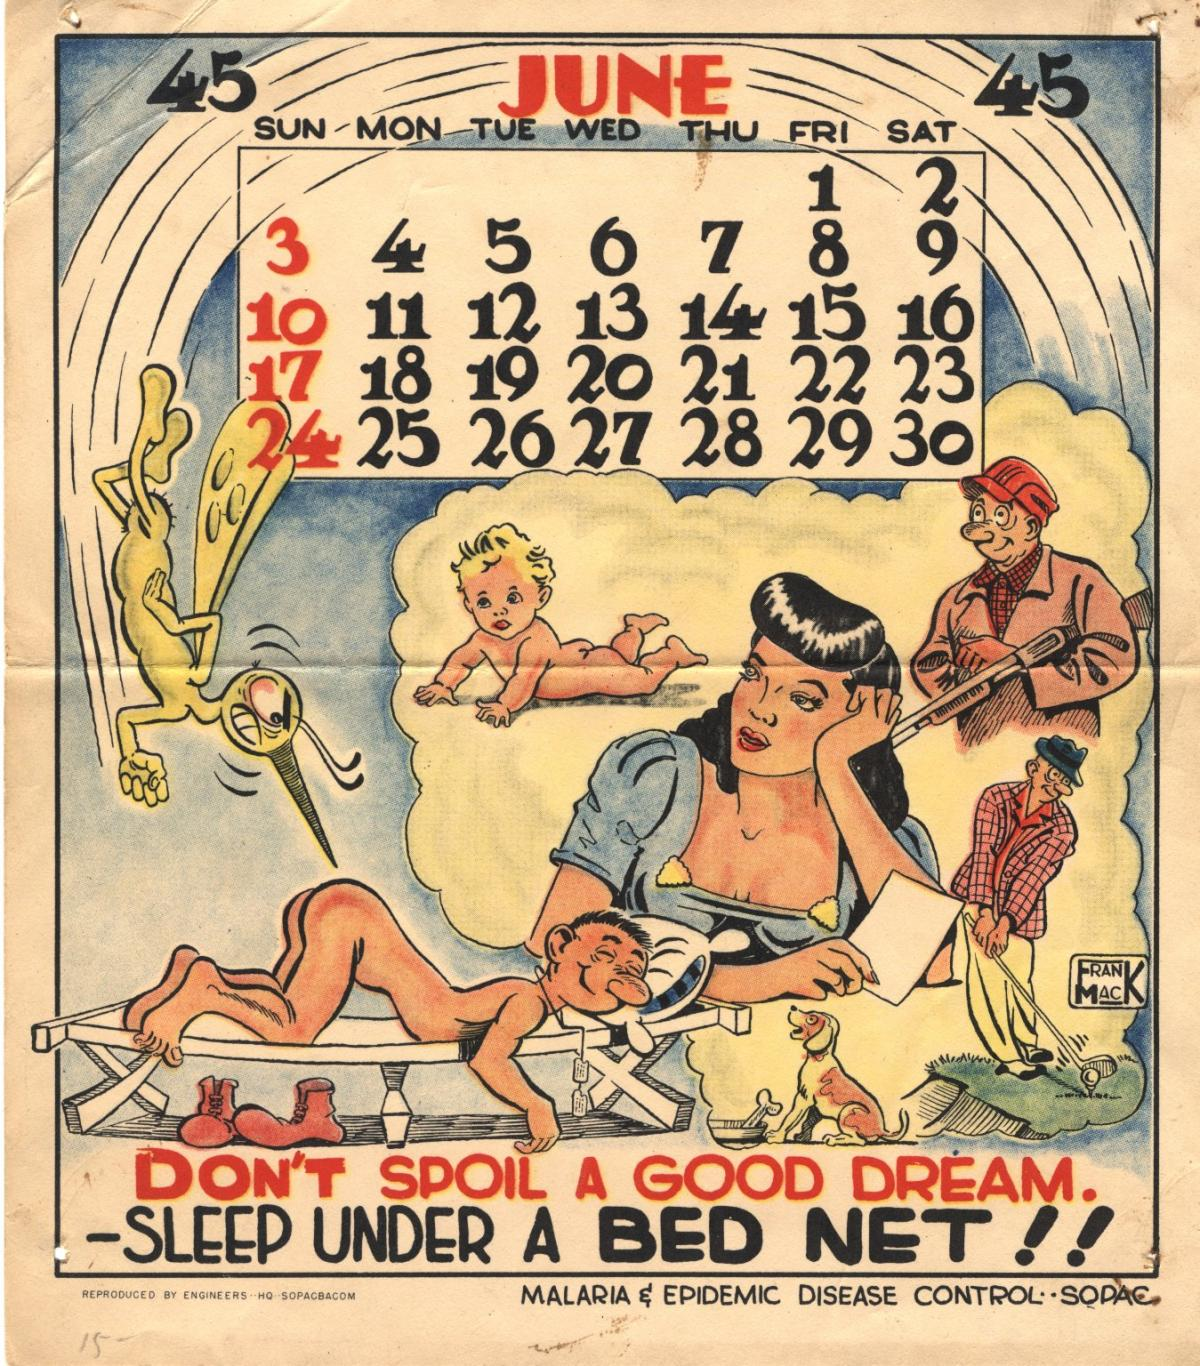 While the Office of Malaria Control in War Areas focused on stopping malaria in the U.S. during War World II, the U.S. Army launched an aggressive campaign to combat the parasite among troops. In 1945, it distributed a monthly pinup calendar to soldiers i